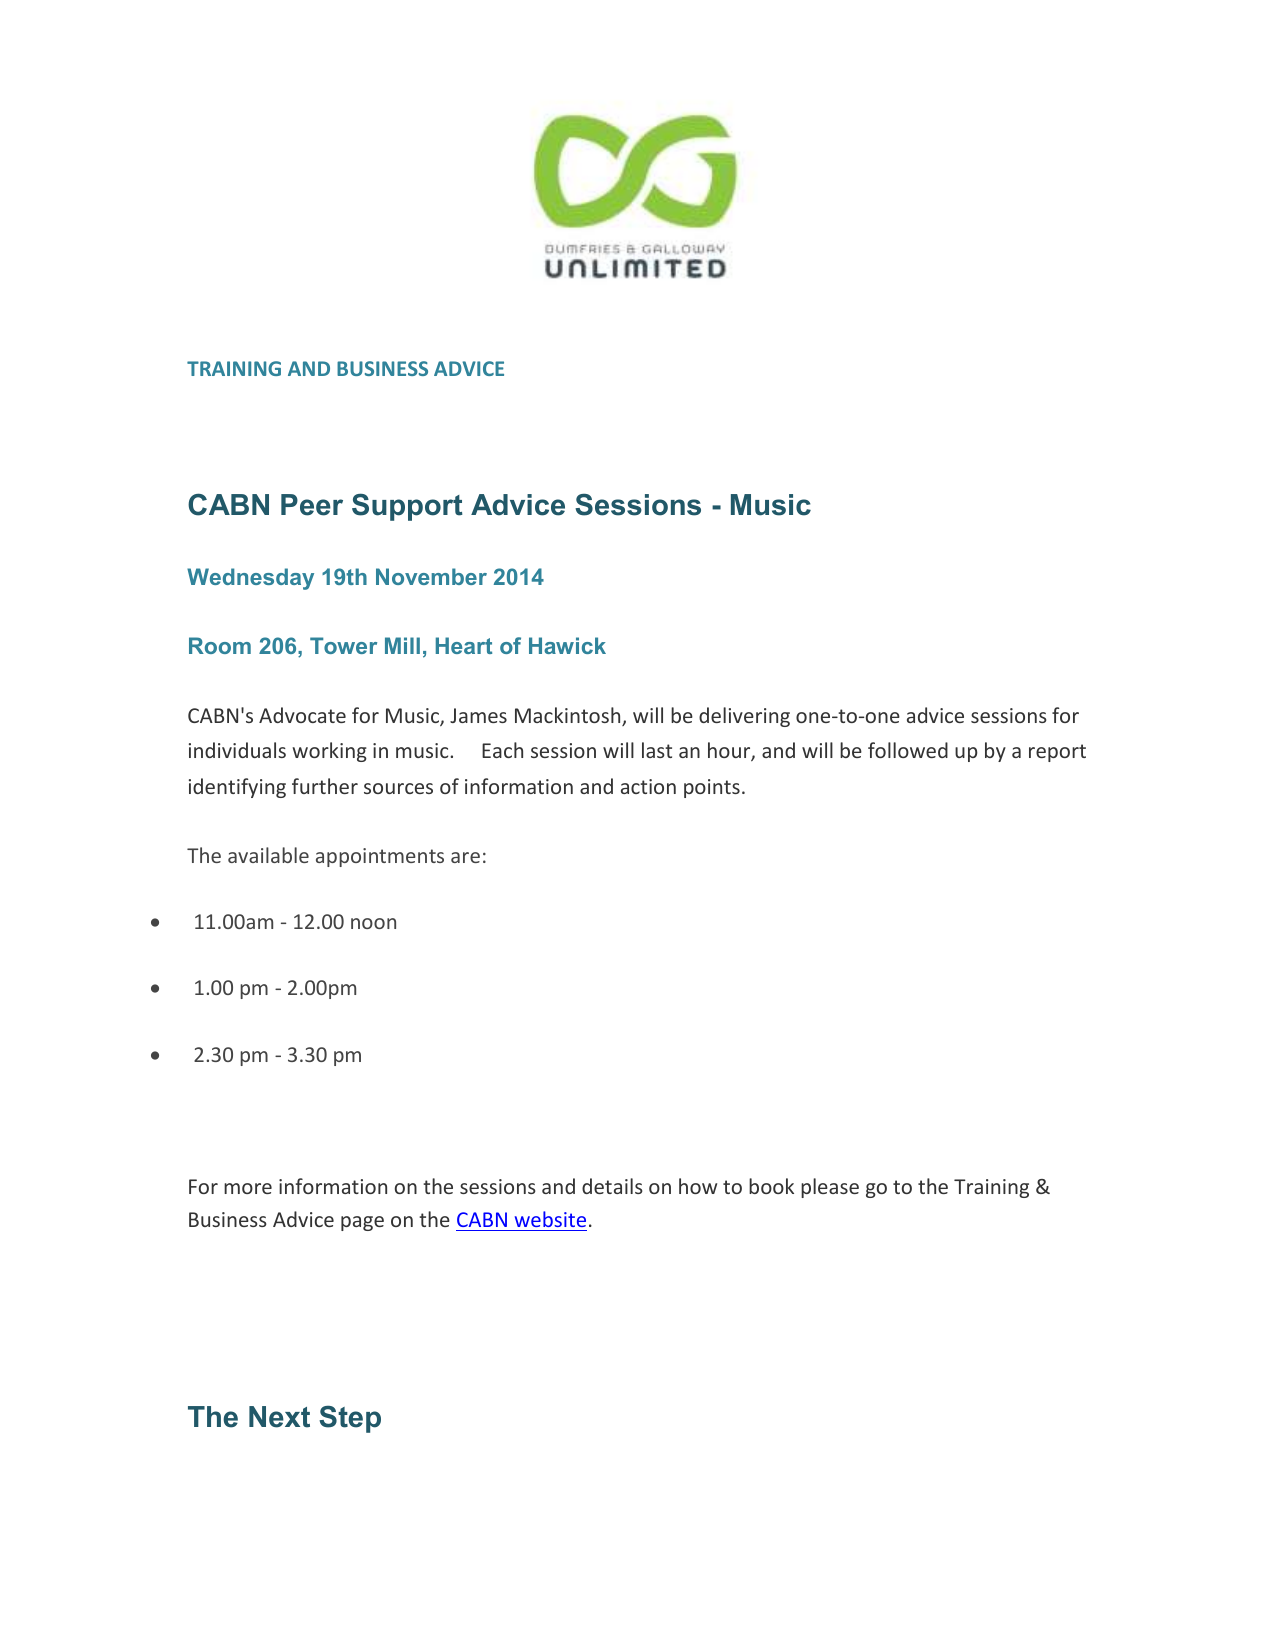 cabn news and opps 06 11 2014